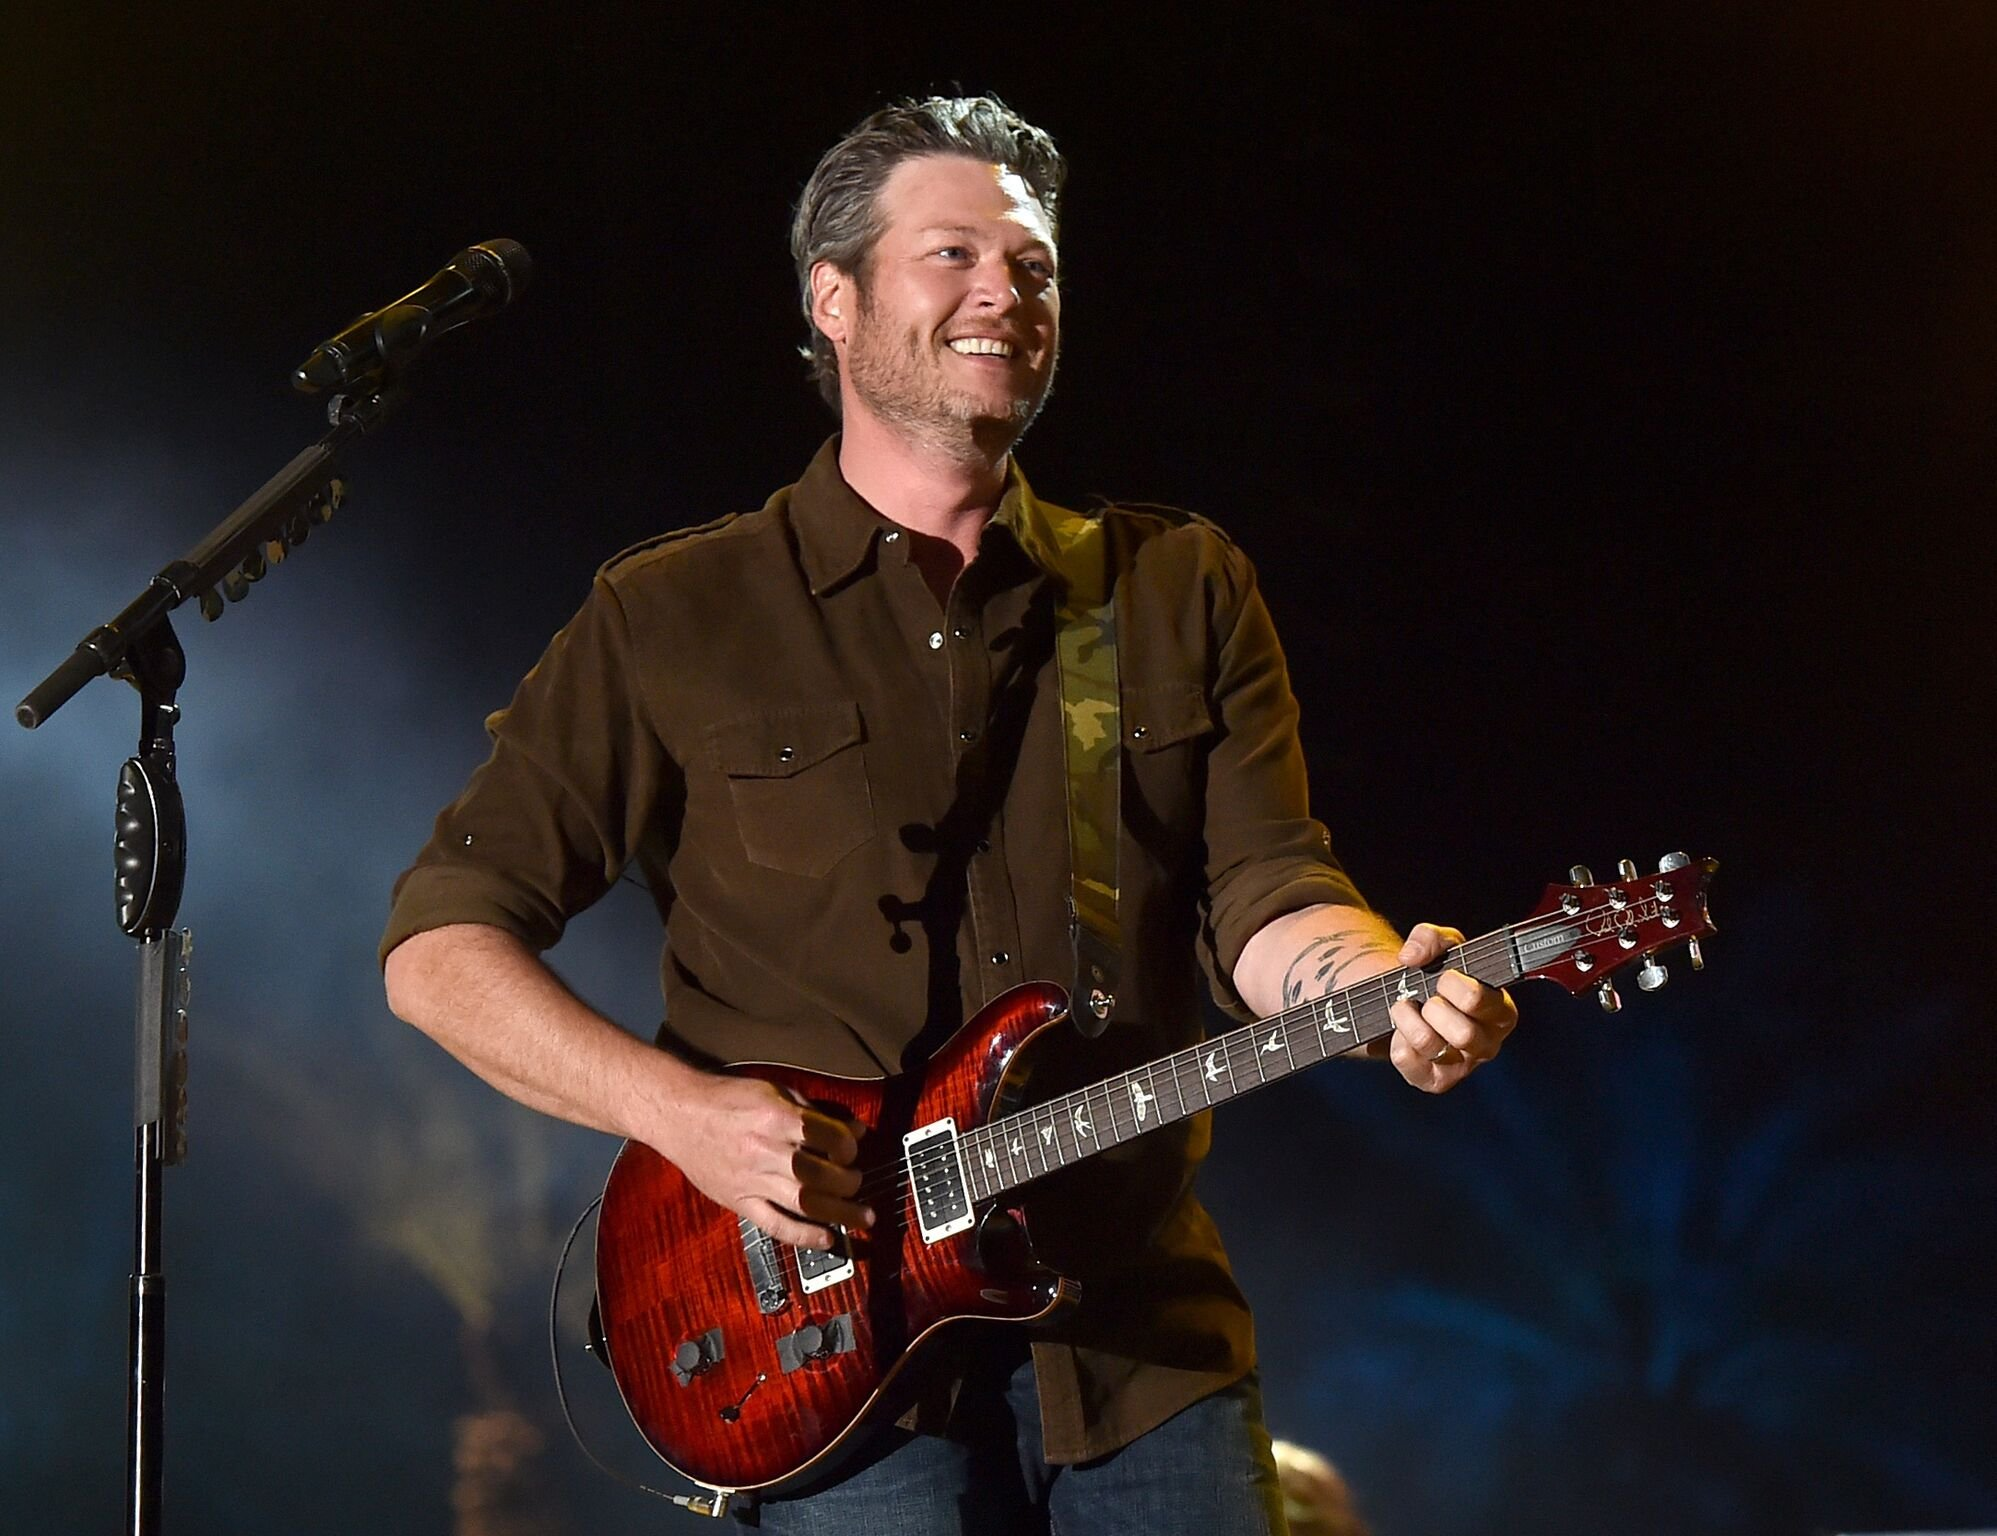 Blake Shelton performs onstage during day three of 2015 Stagecoach, California's Country Music Festival | Getty Images